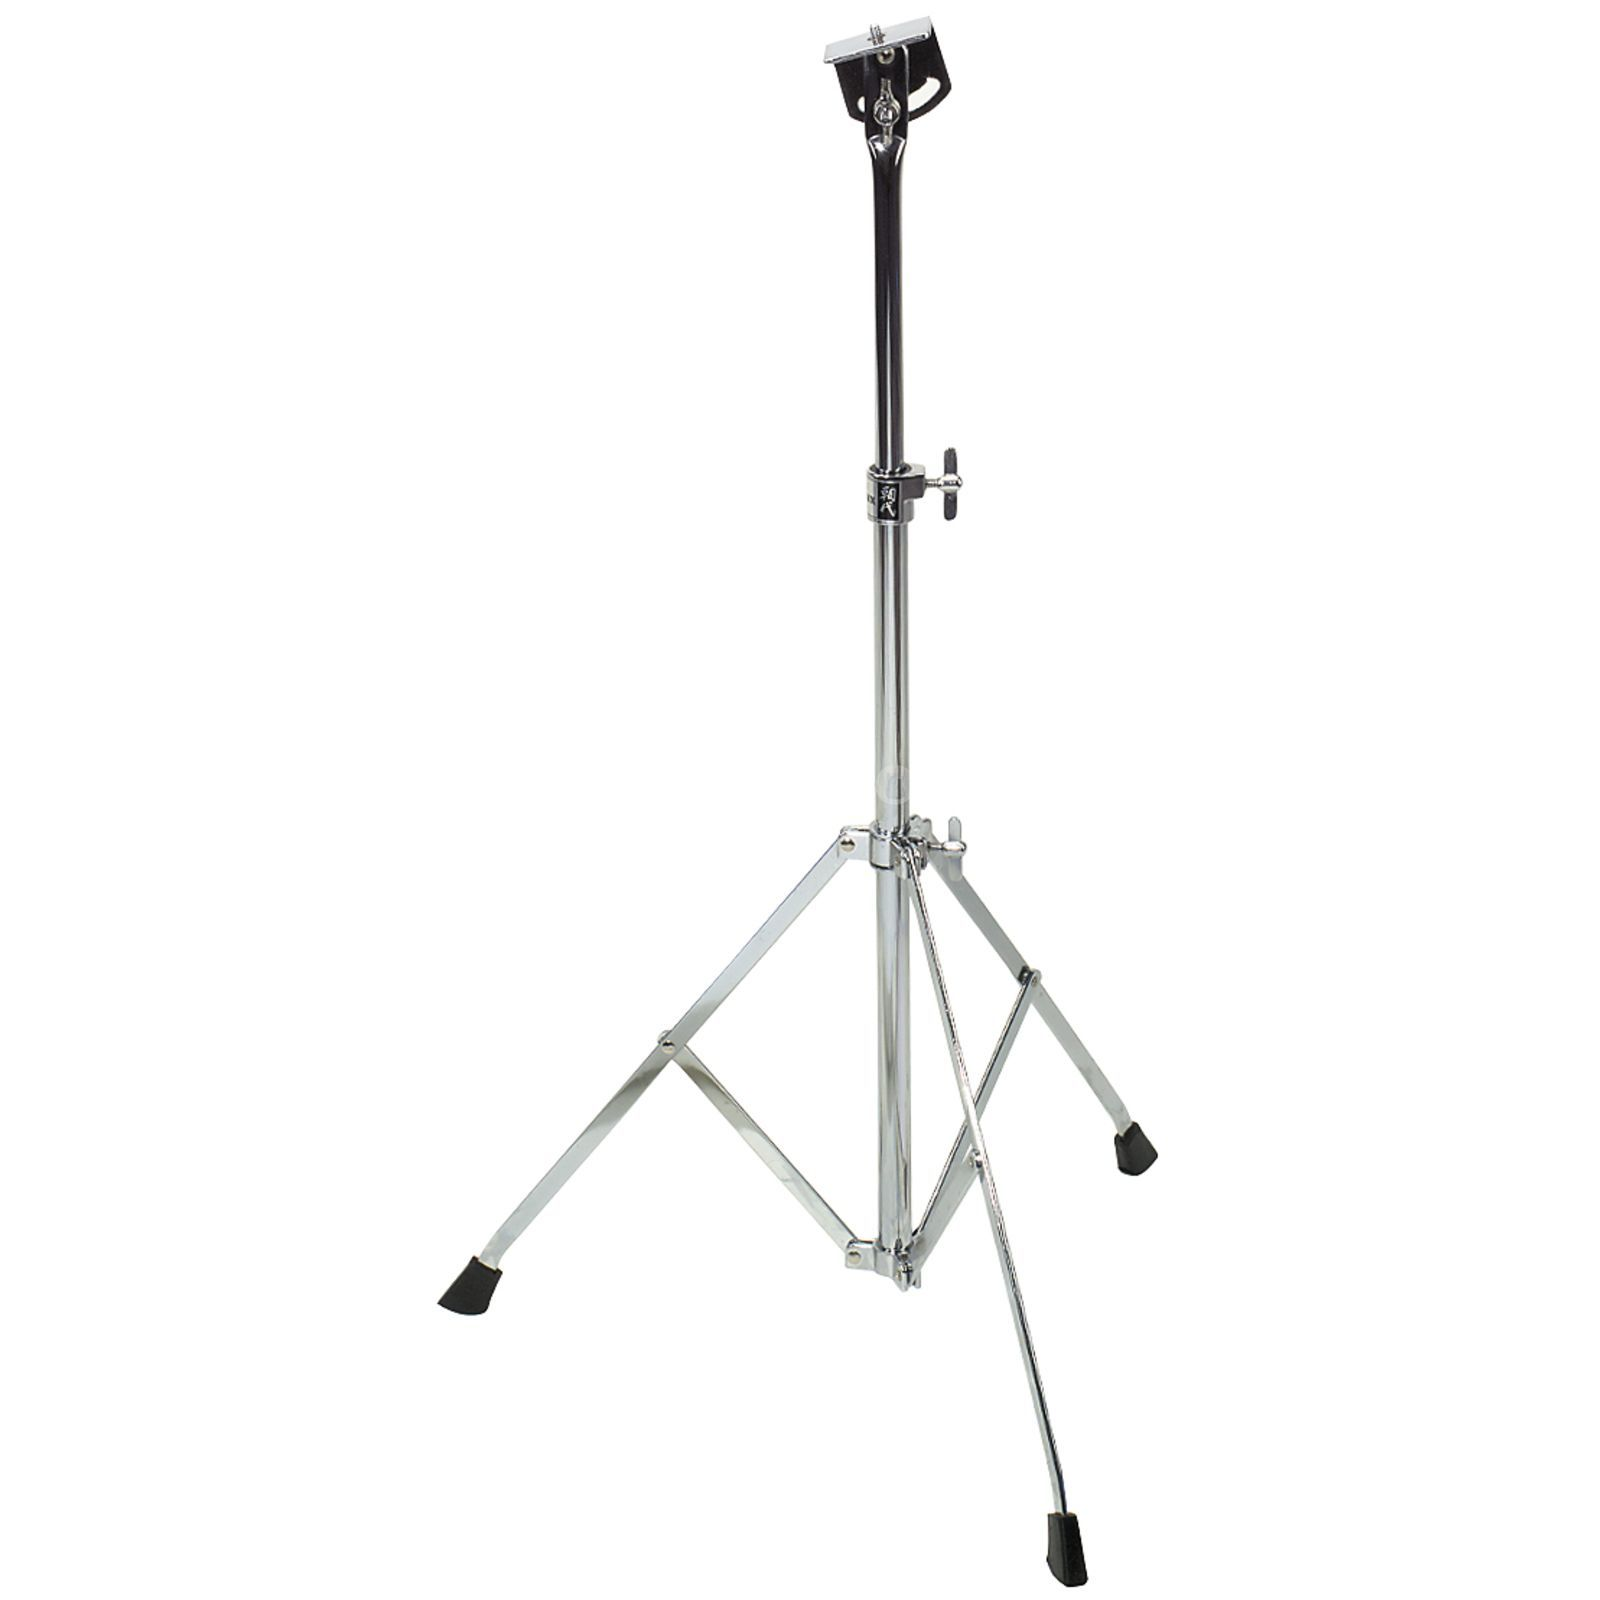 Remo stand voor Practice Pad ST-1000-10 Productafbeelding